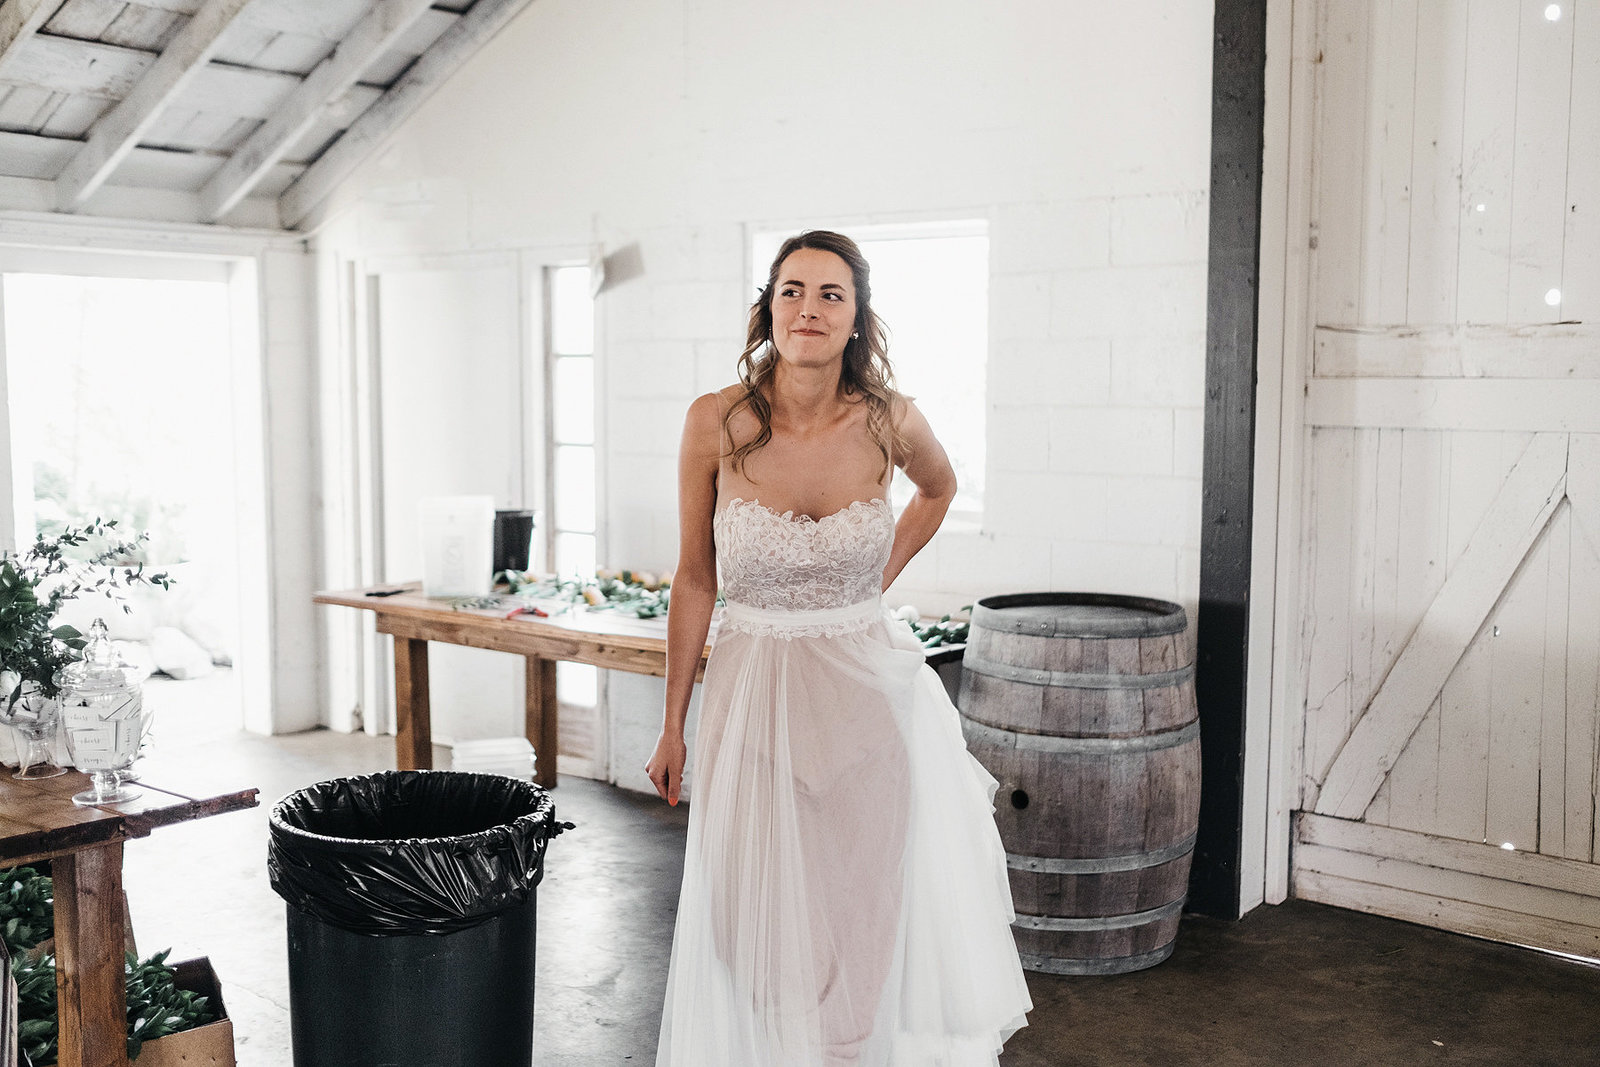 athena-and-camron-seattle-wedding-photographer-dairyland-snohomish-rustic-barn-wedding-flowers-styling-inspiration-lauren-madison-20